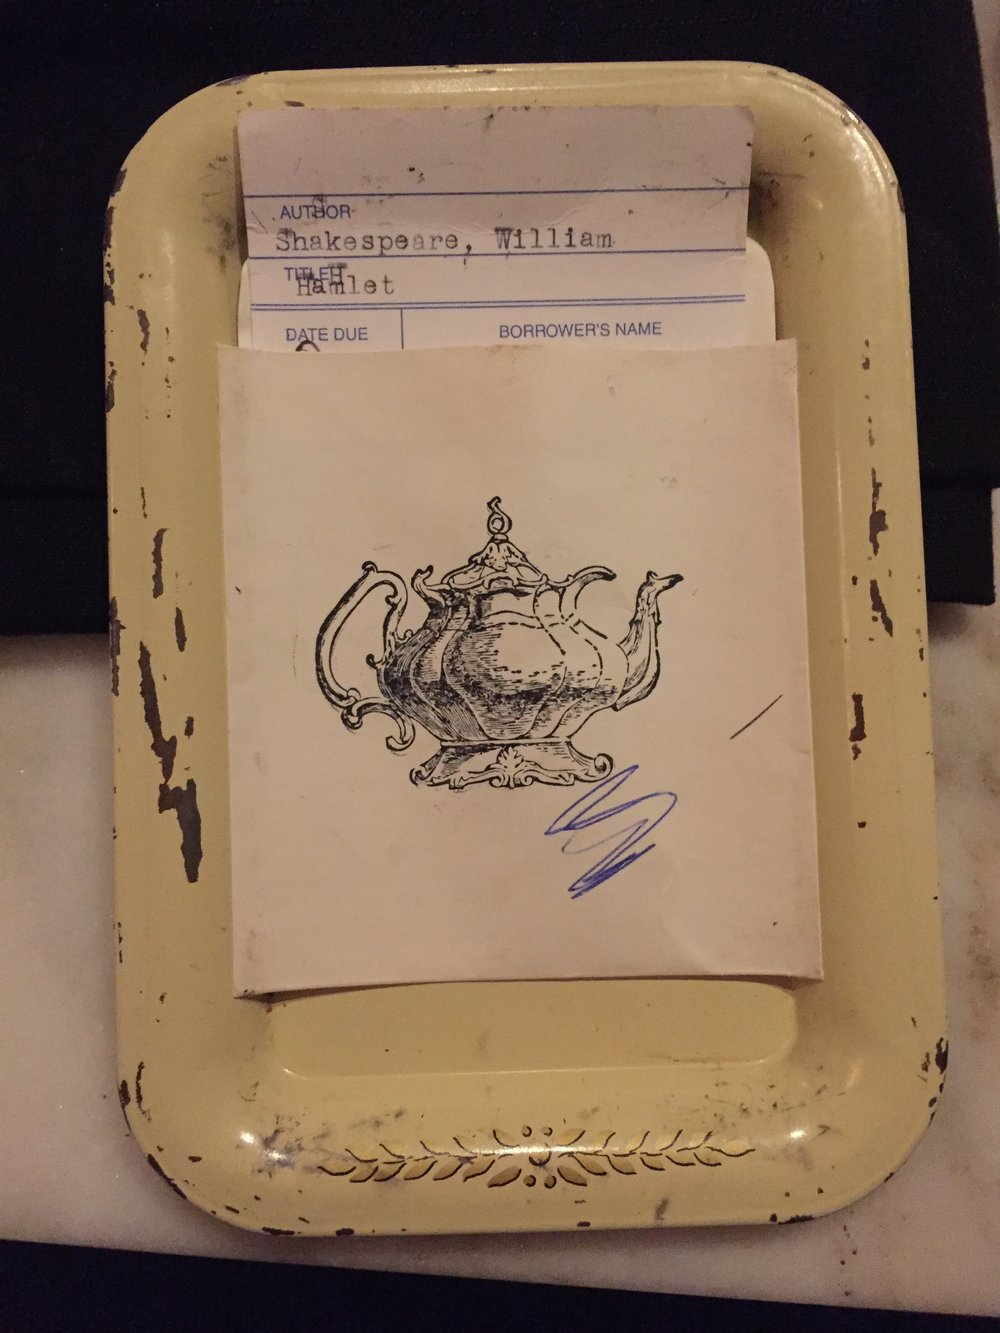 [image description: a vintage cream-colored tray with a notecard printed with a teapot sitting in the tray. Inside the notecard is an old library checkout card for Shakespeare's Hamlet.]